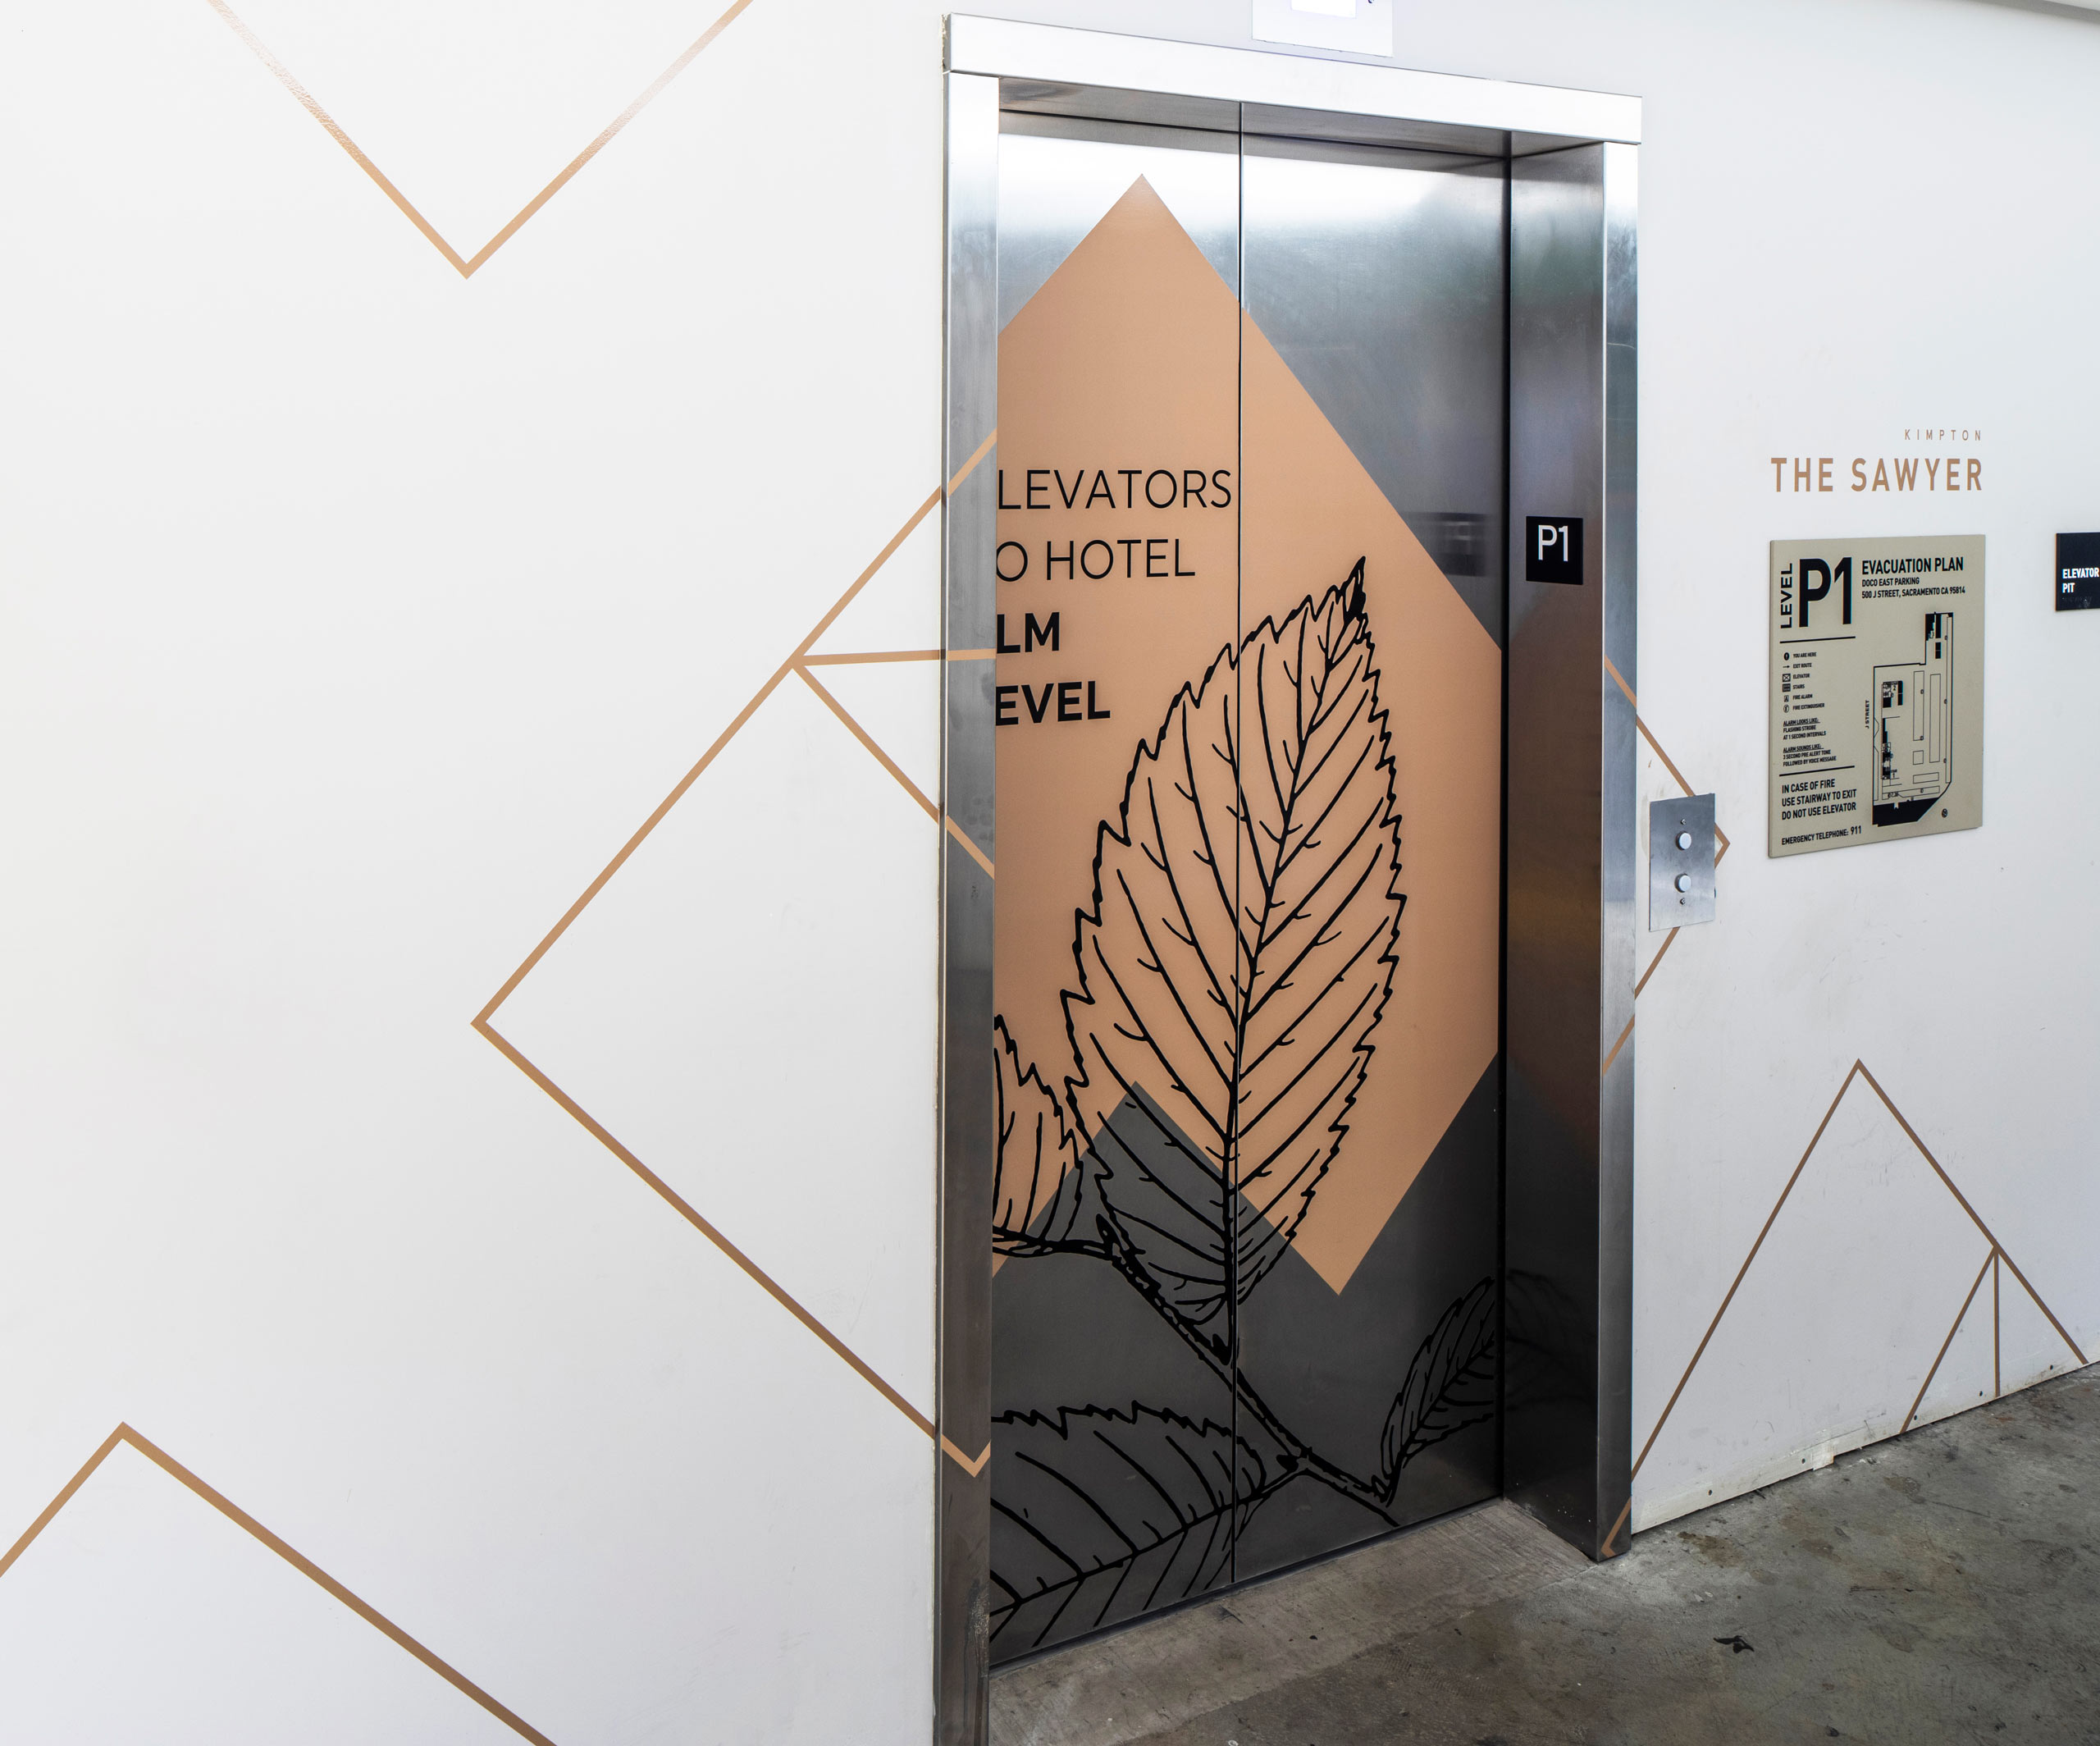 elevator doors with leaf illustration